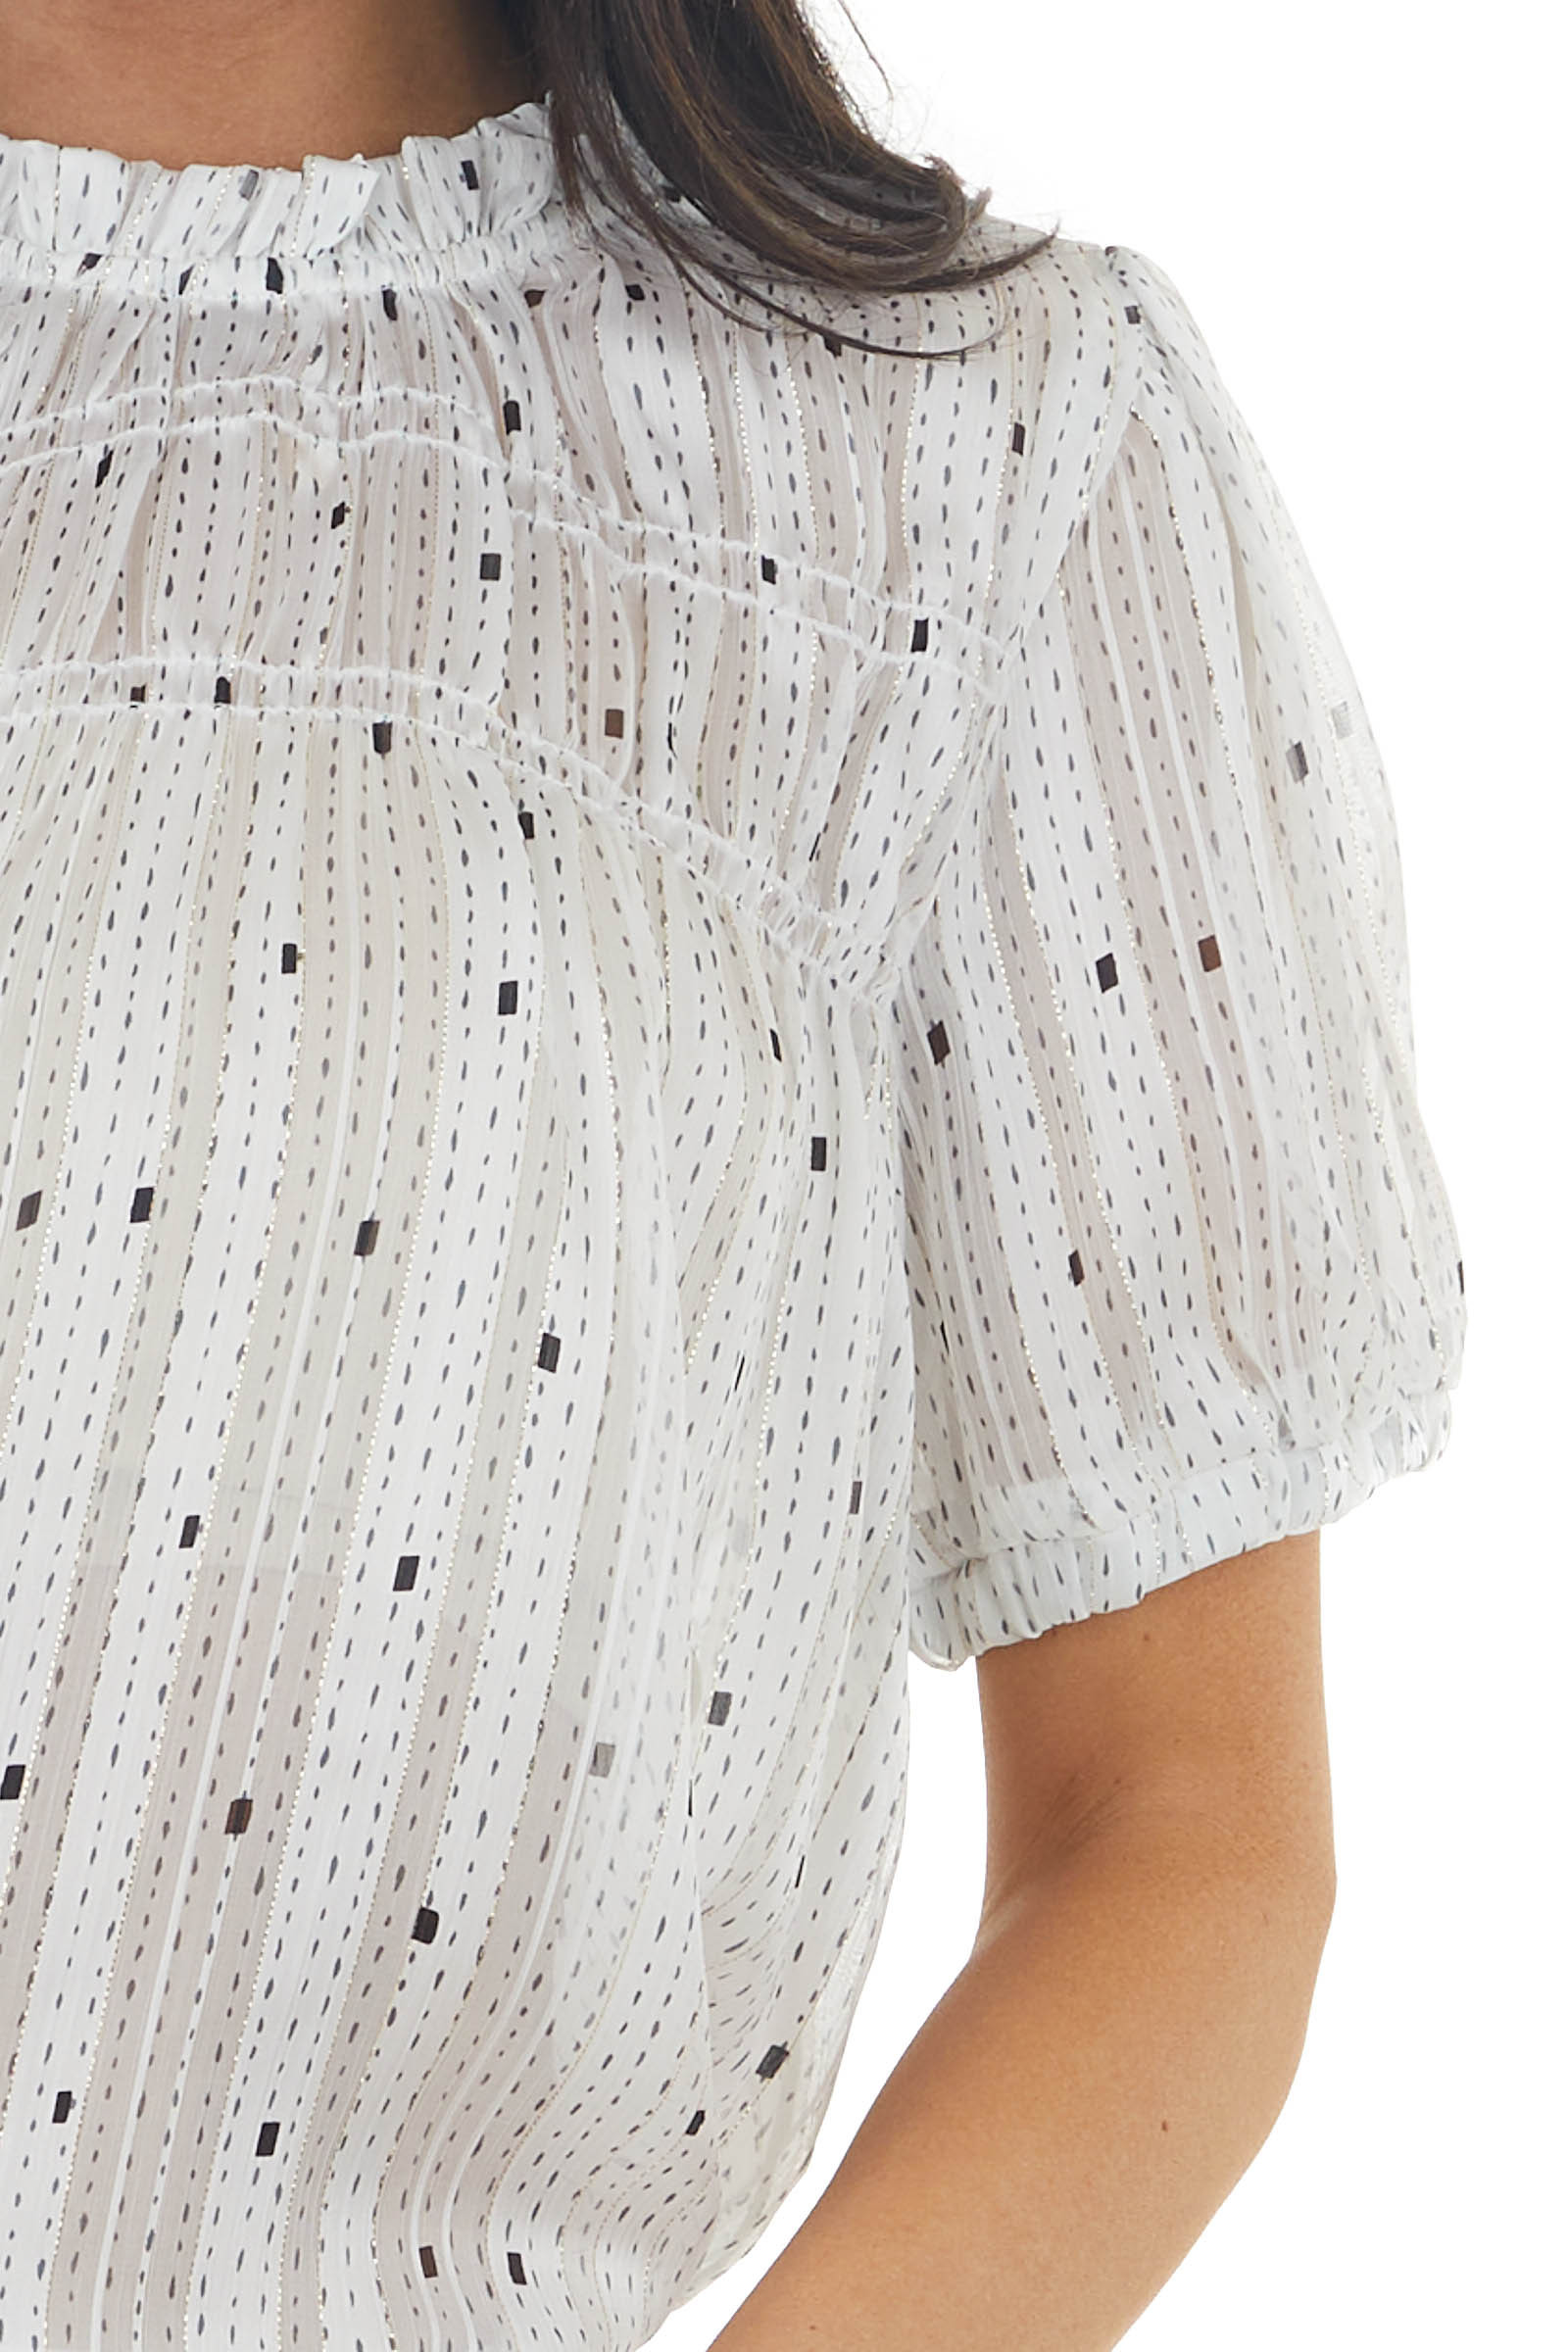 Ivory Printed Short Sleeve Sheer Blouse with Gold Detail